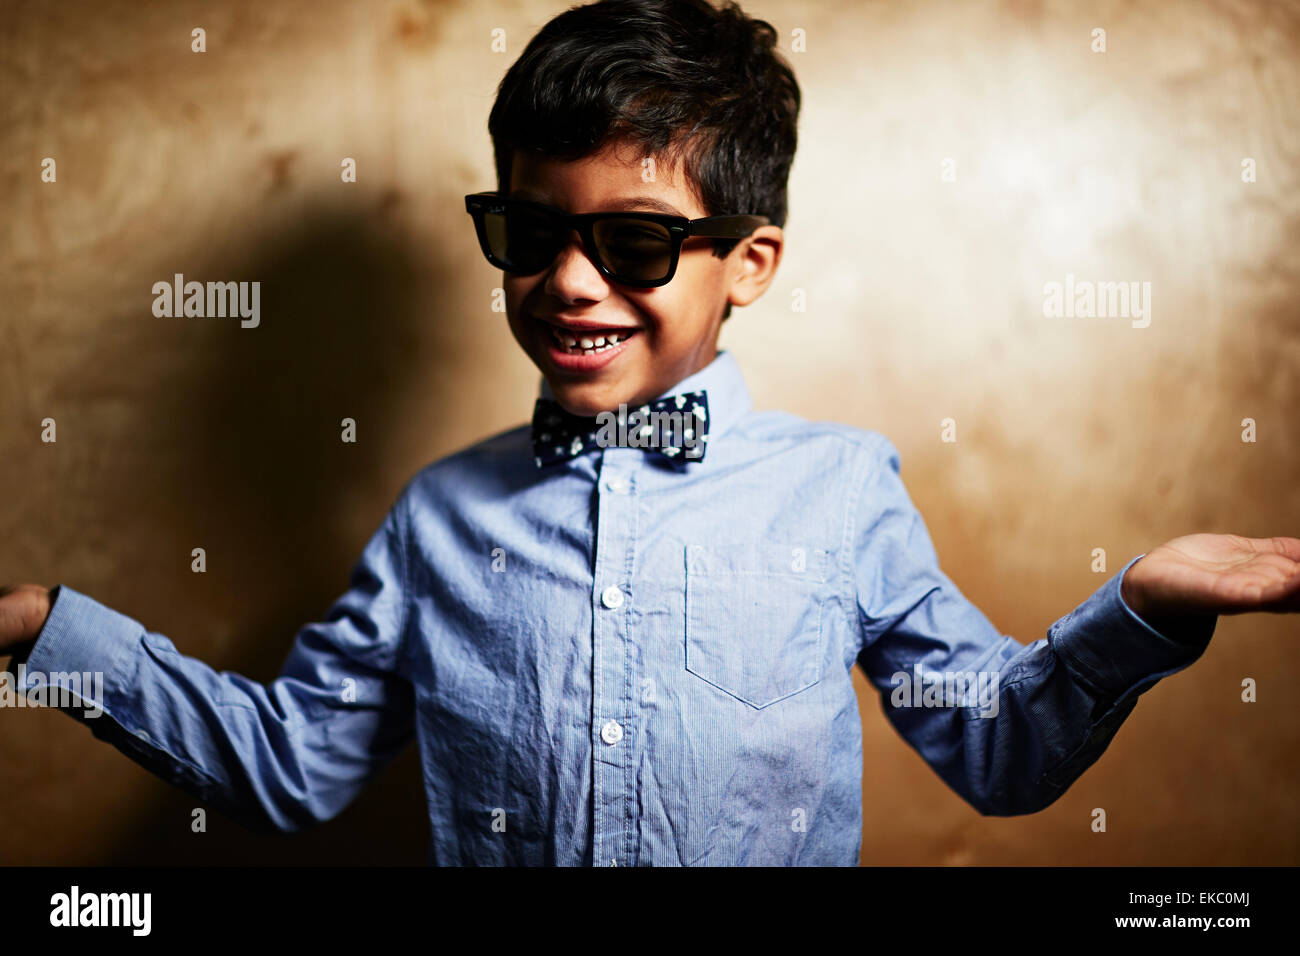 Boy wearing sunglasses and bow tie - Stock Image